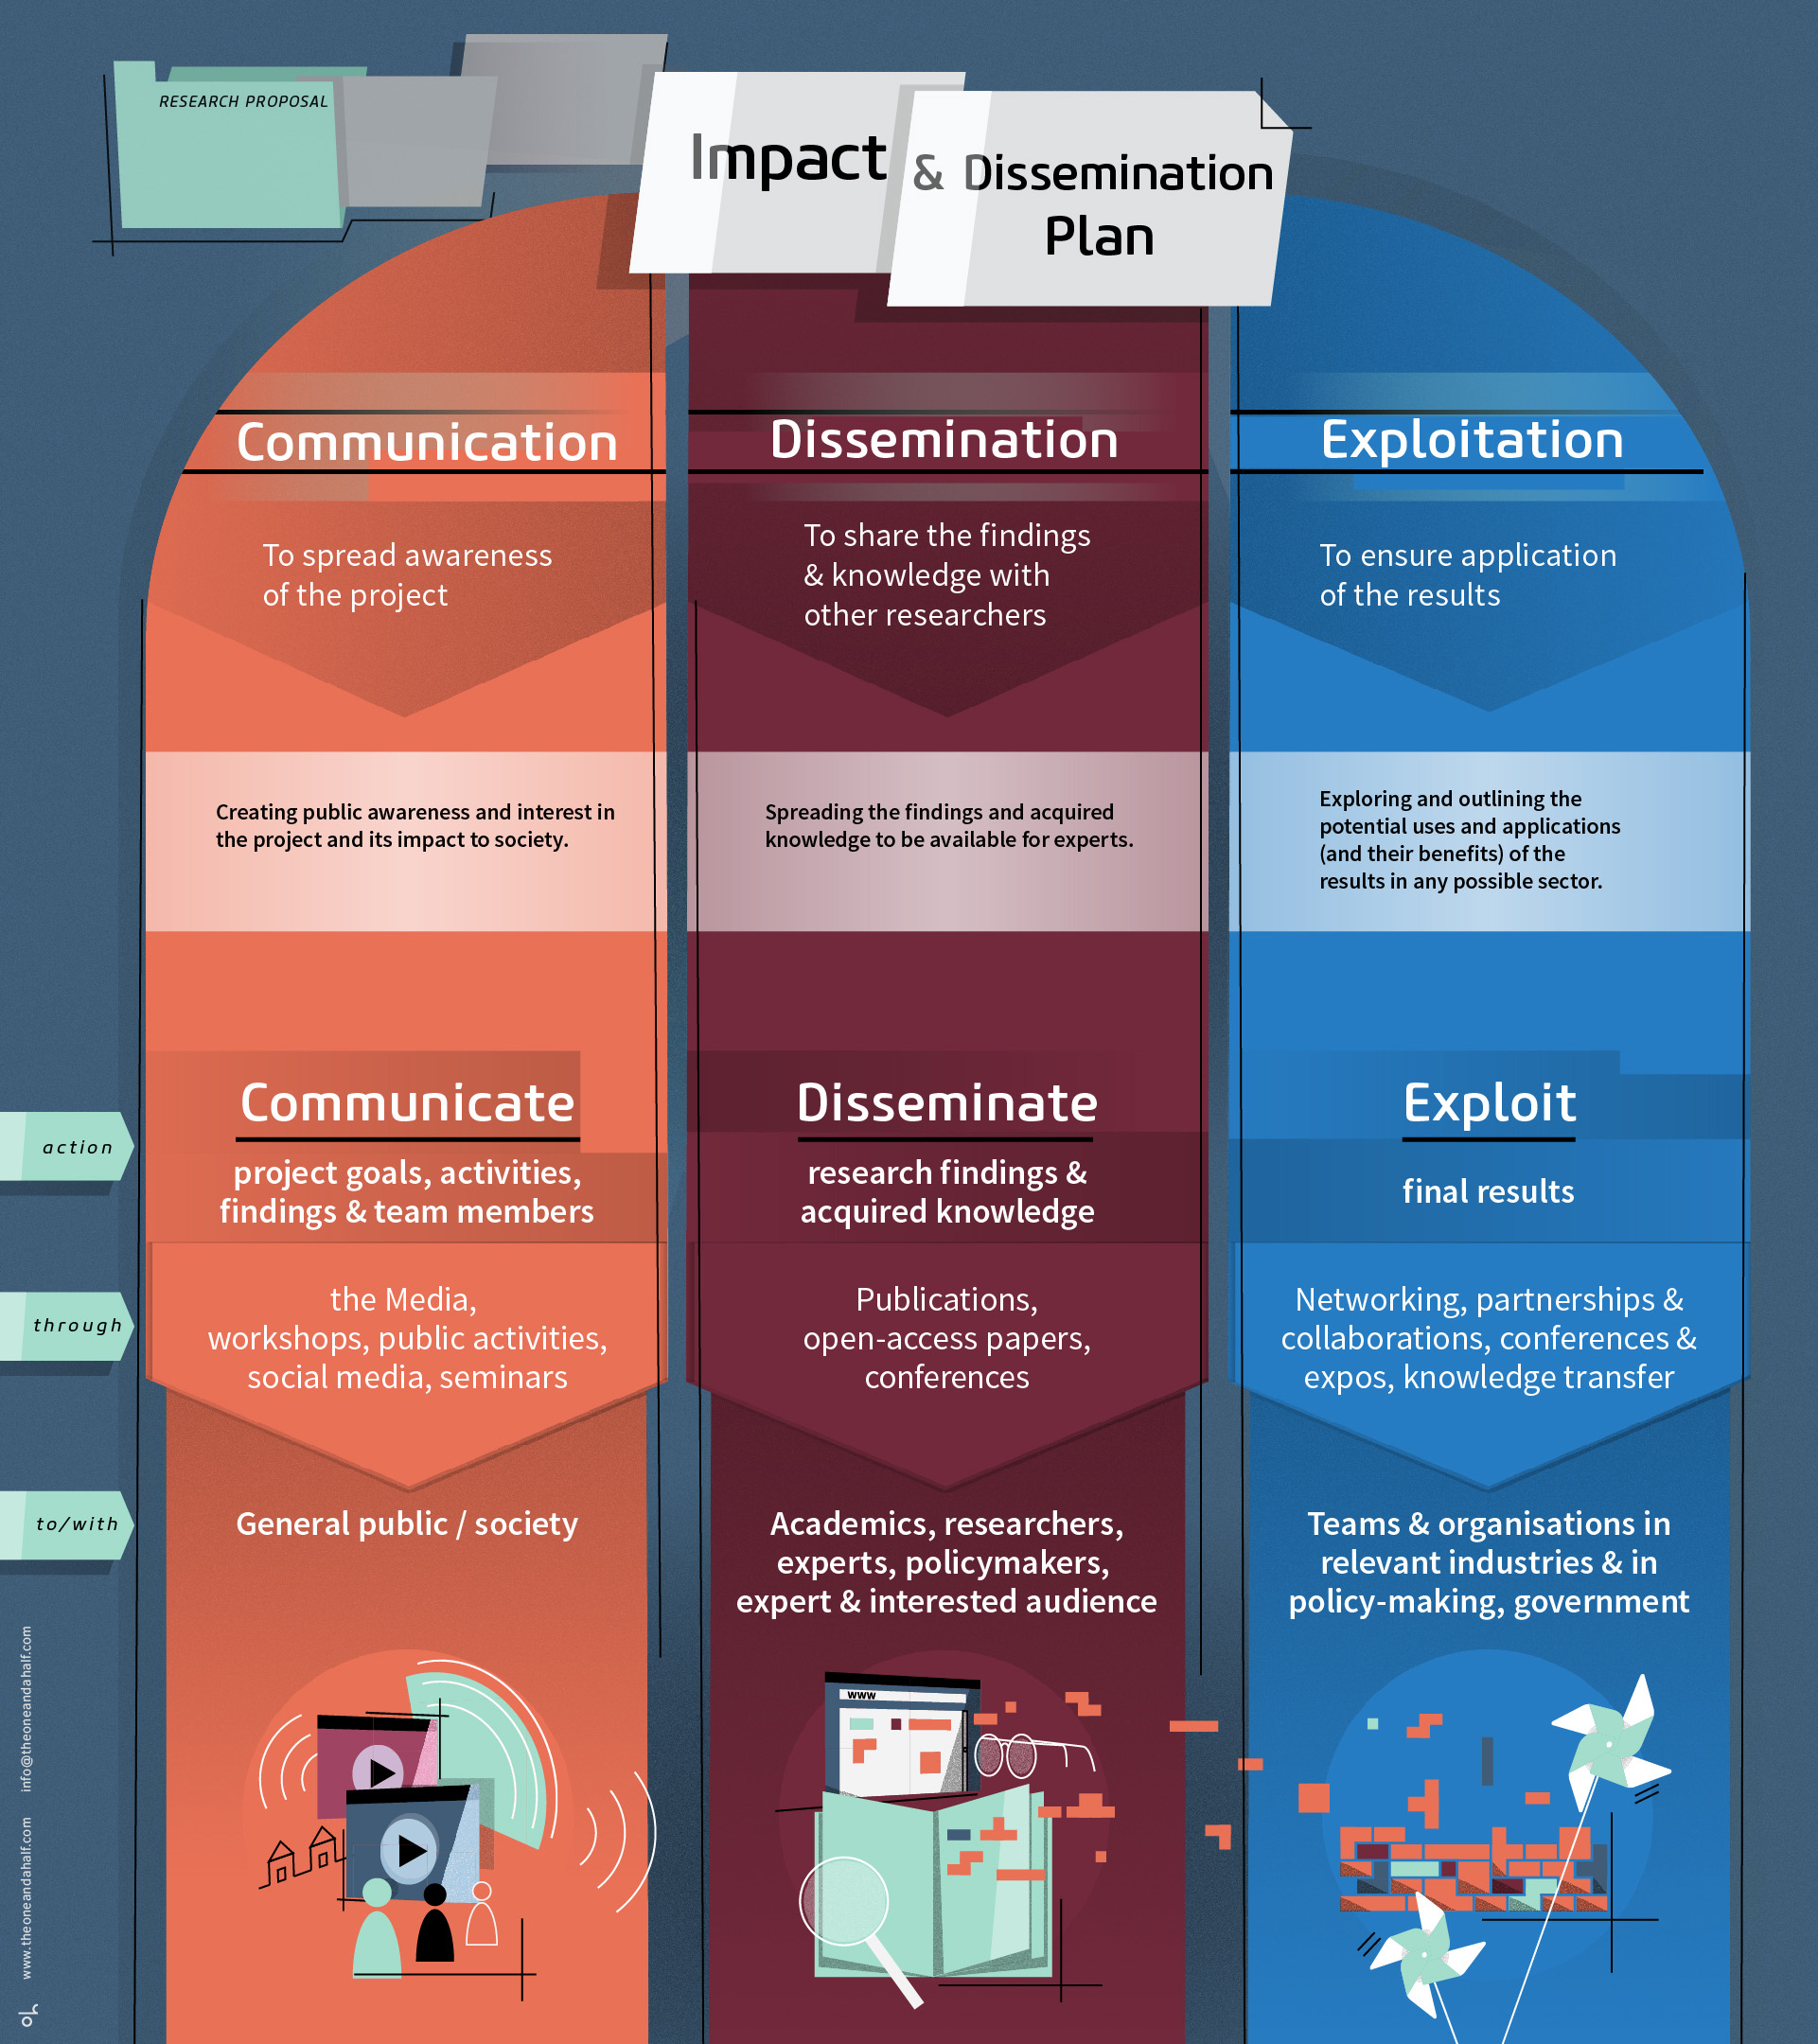 oh_research propsal_dissemination_impact_science_plan_infographic1